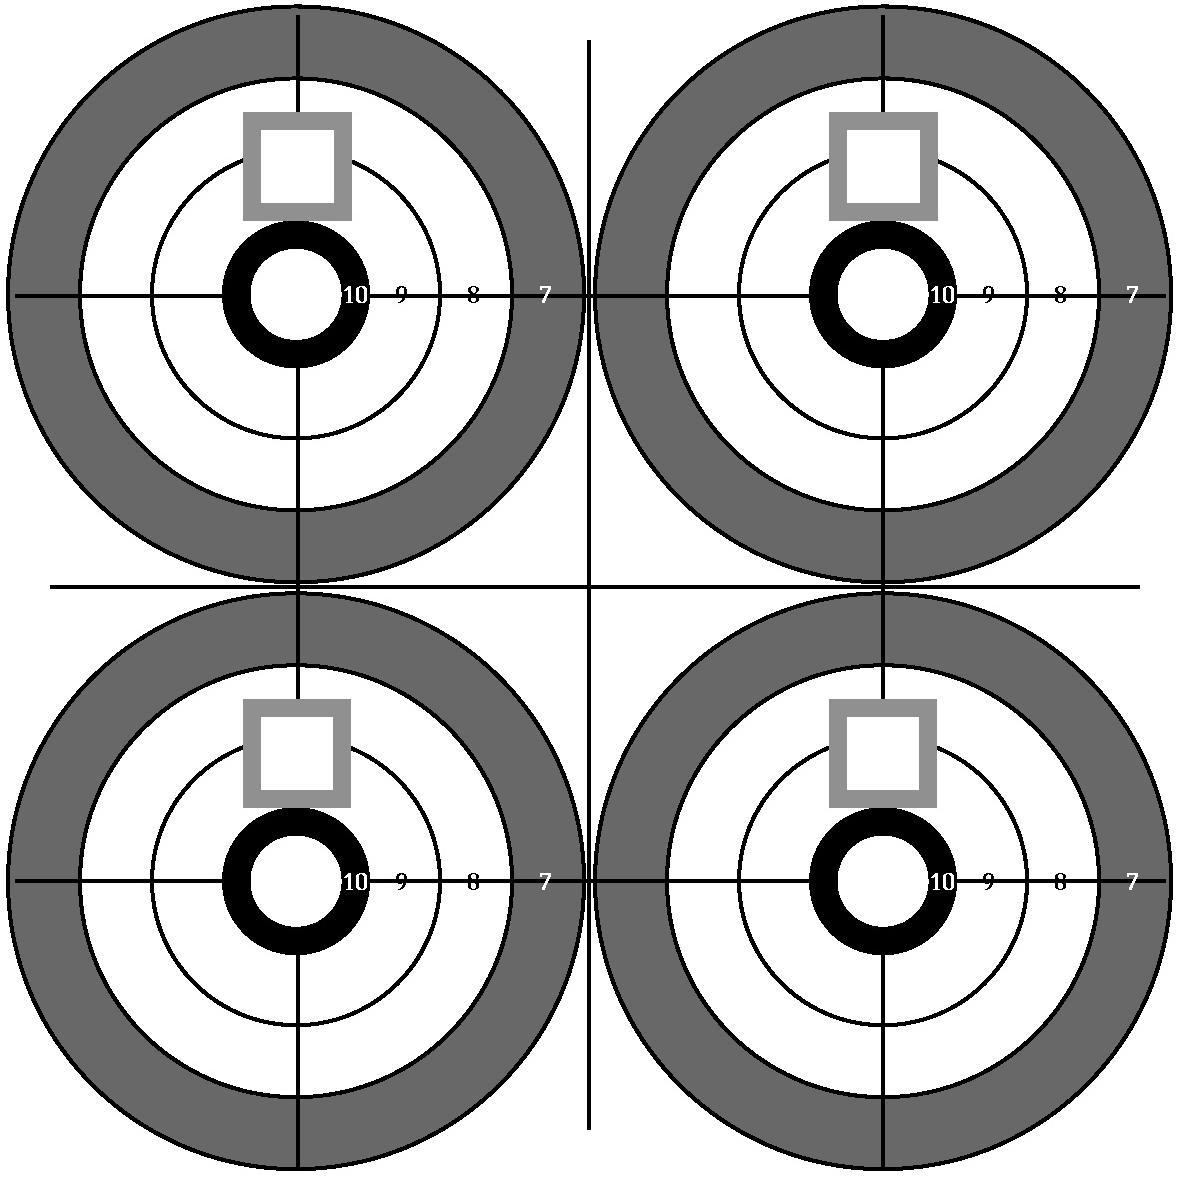 printable shooting targets 8.5x11